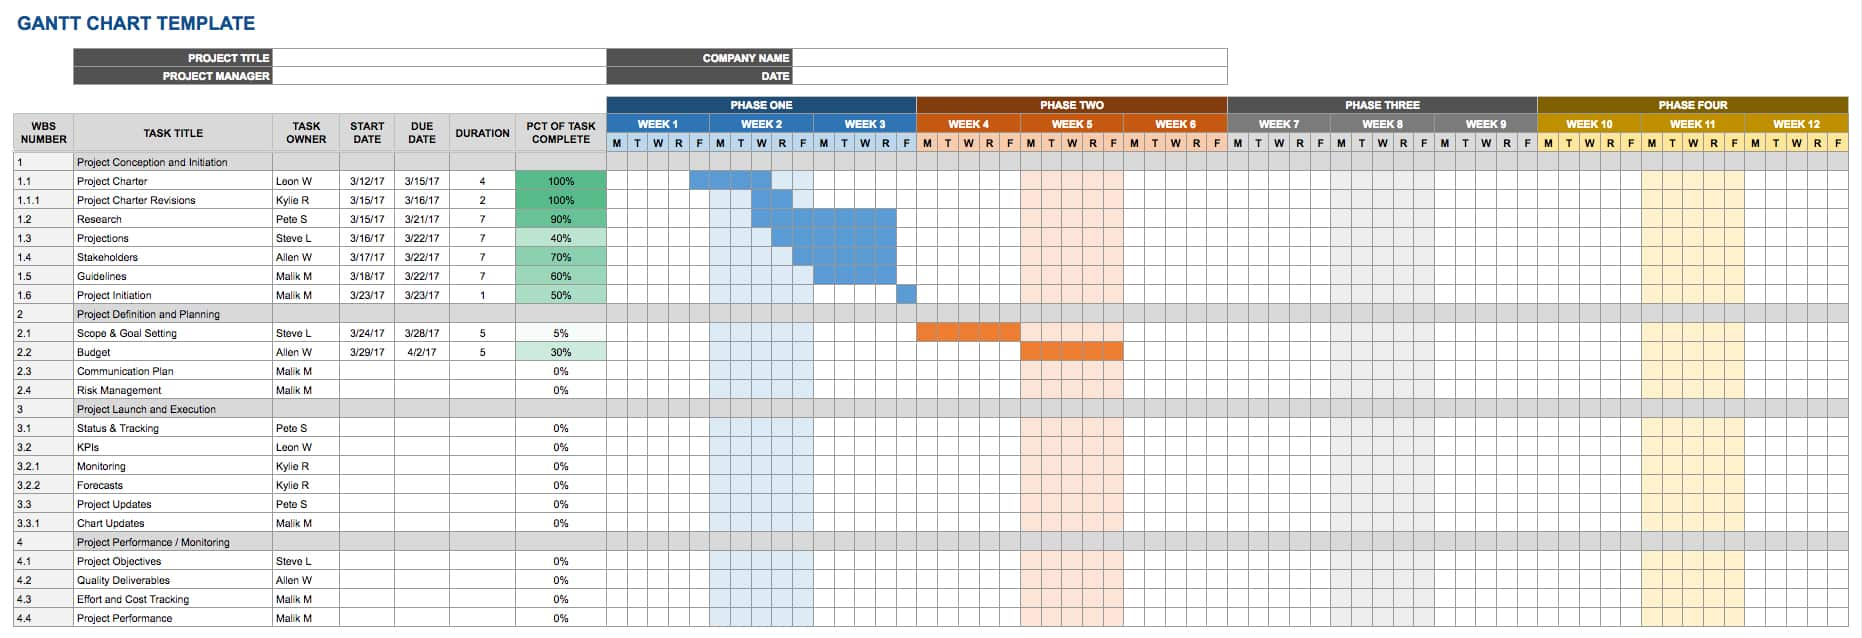 Download gantt chart excel help gantt chart excel template for Google sites faq template